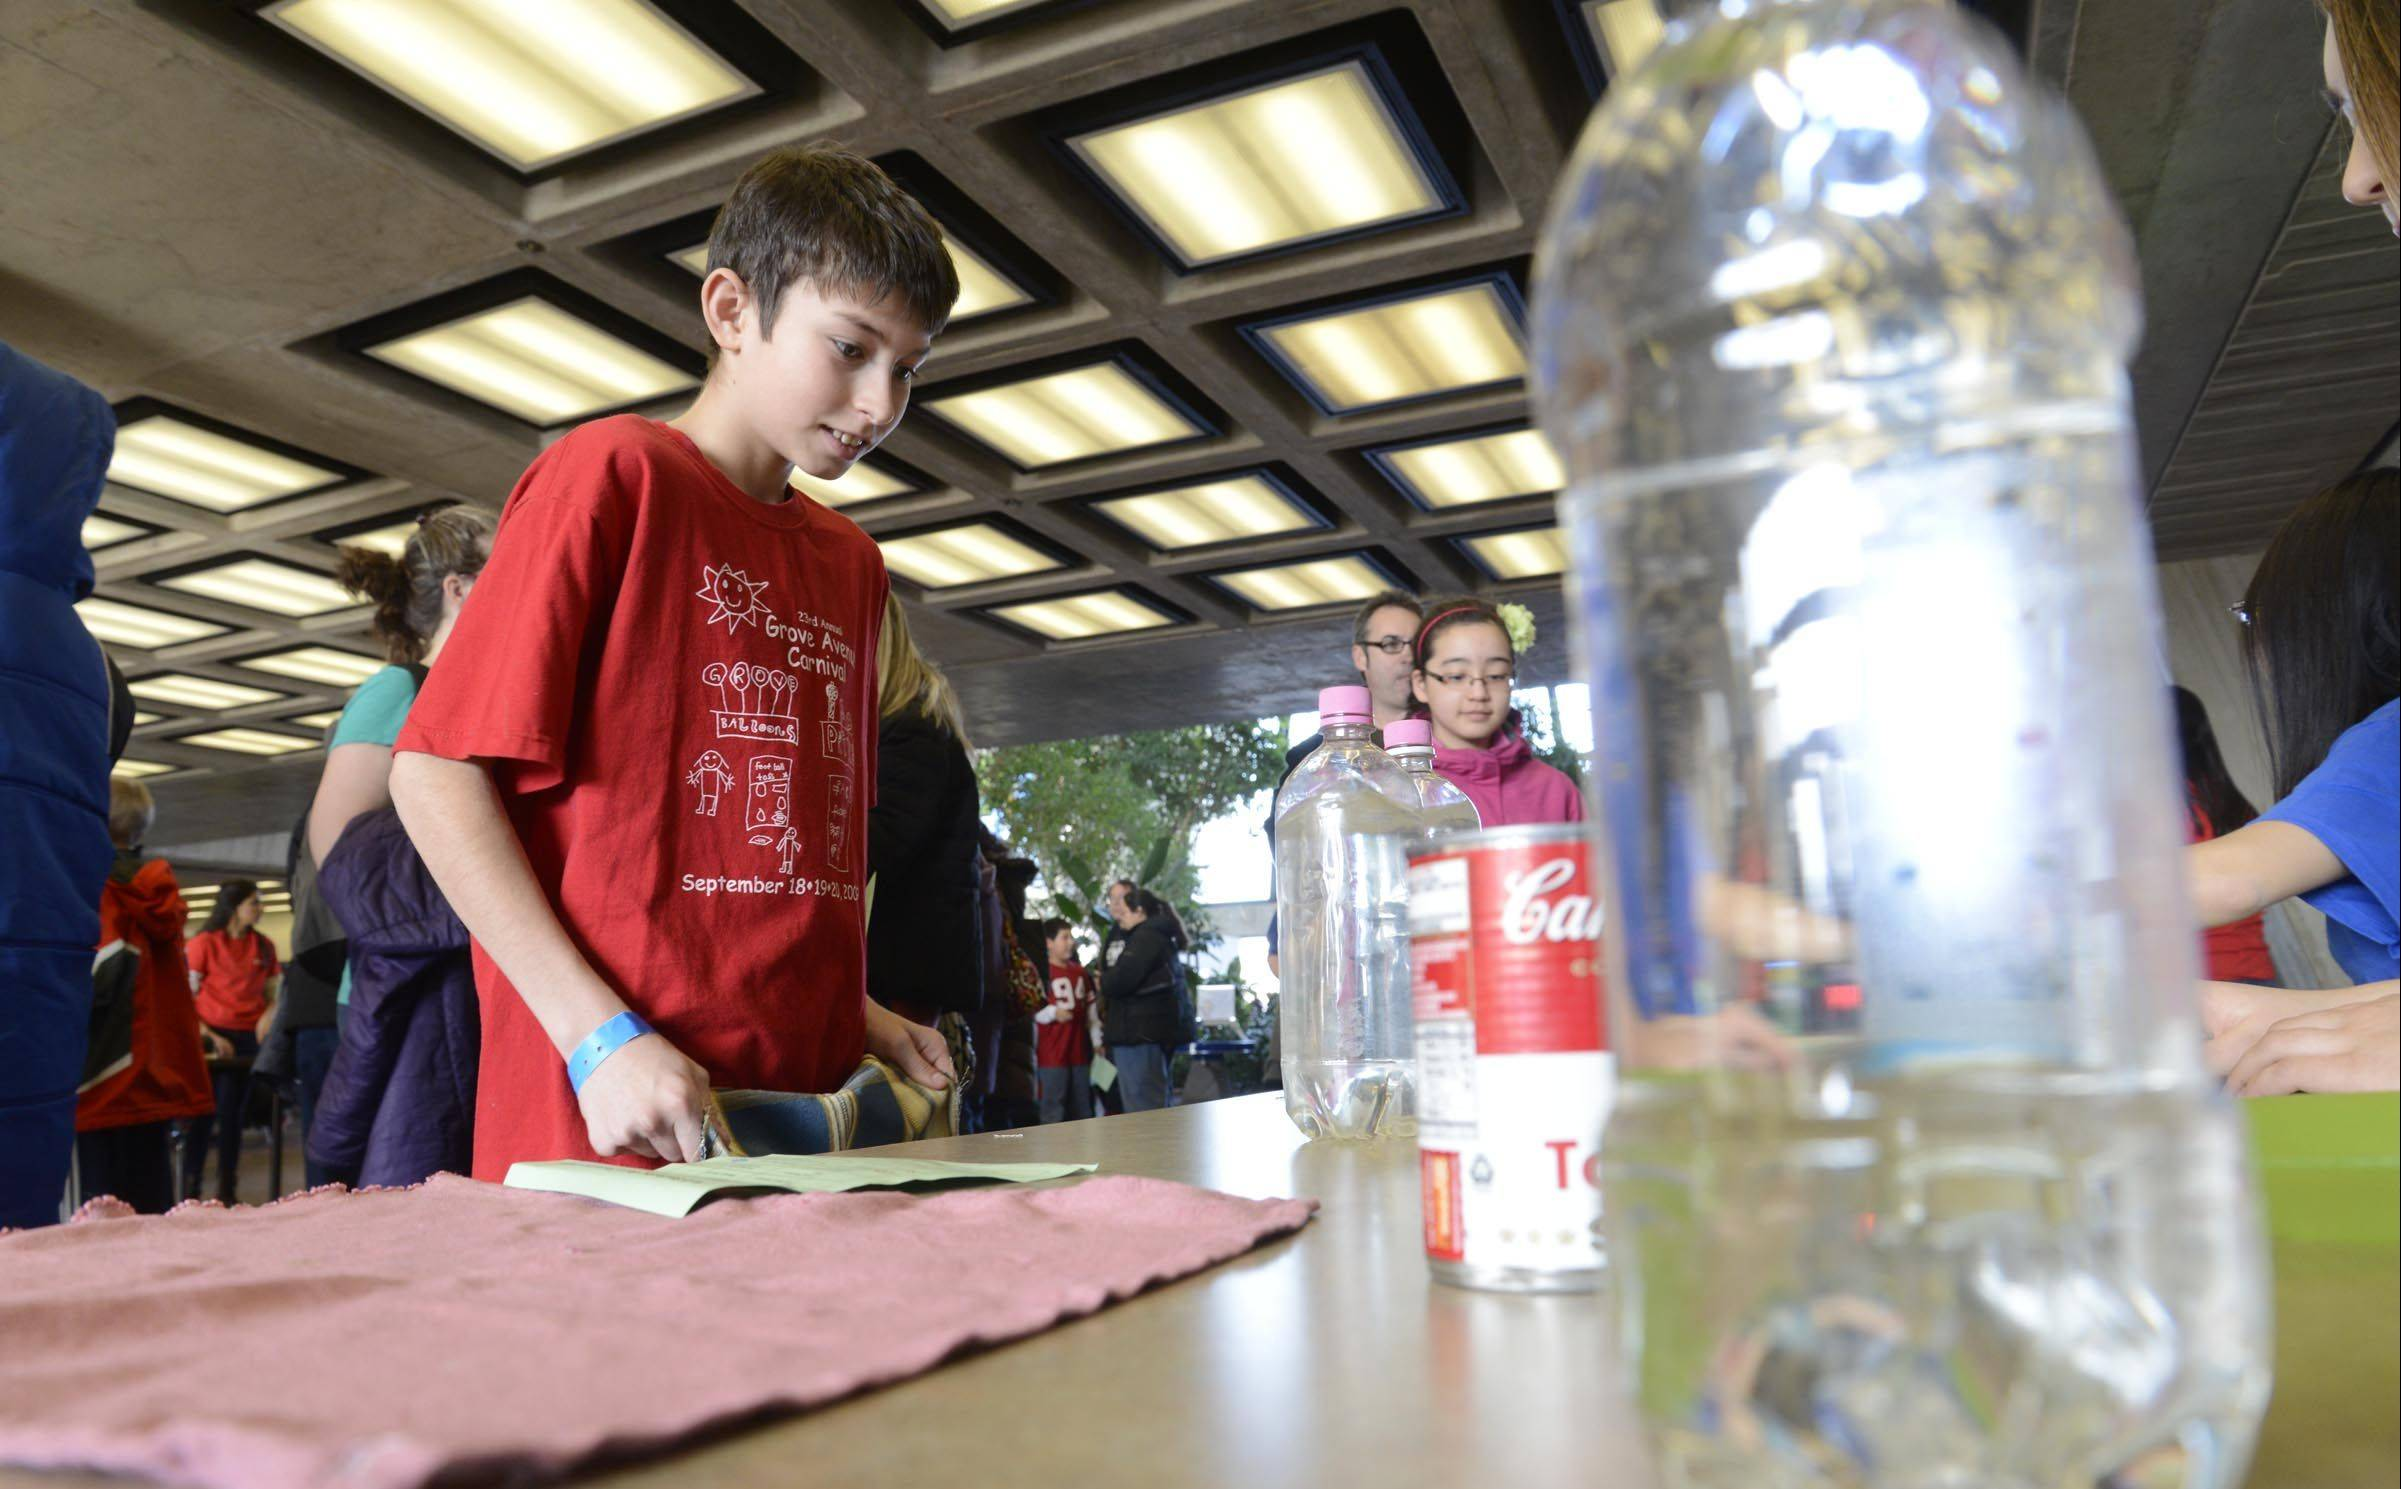 Above, Brendan Barnett, 11, of Hoffman Estates, tests theories of friction while pulling a cloth out from under objects Sunday at the Fermi Lab Family Open House in Batavia. Below, Richard Yang, 10, of Wheaton, spins a bucket full of Ping-Pong balls. He was doing an experiment to test centripetal force. About 2,000 children and families attended the annual event where kids get to try hands-on experiments and meet scientists.